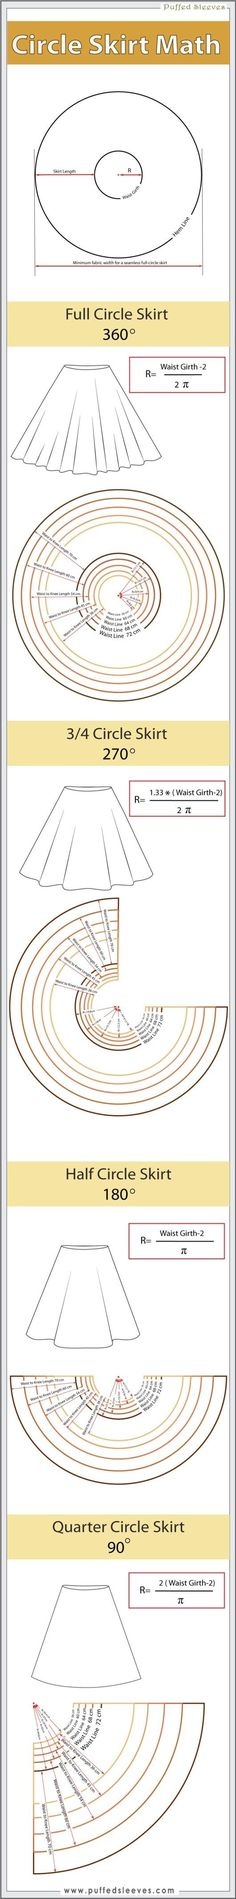 Sewing Skirts Circle skirt pattern More - A circle skirt is pretty easy to make. It requires few pieces and basic techniques, making it a good exercise for beginners. Sewing Hacks, Sewing Tutorials, Sewing Crafts, Sewing Projects, Sewing Patterns, Sewing Tips, Dress Tutorials, Coat Patterns, Blouse Patterns